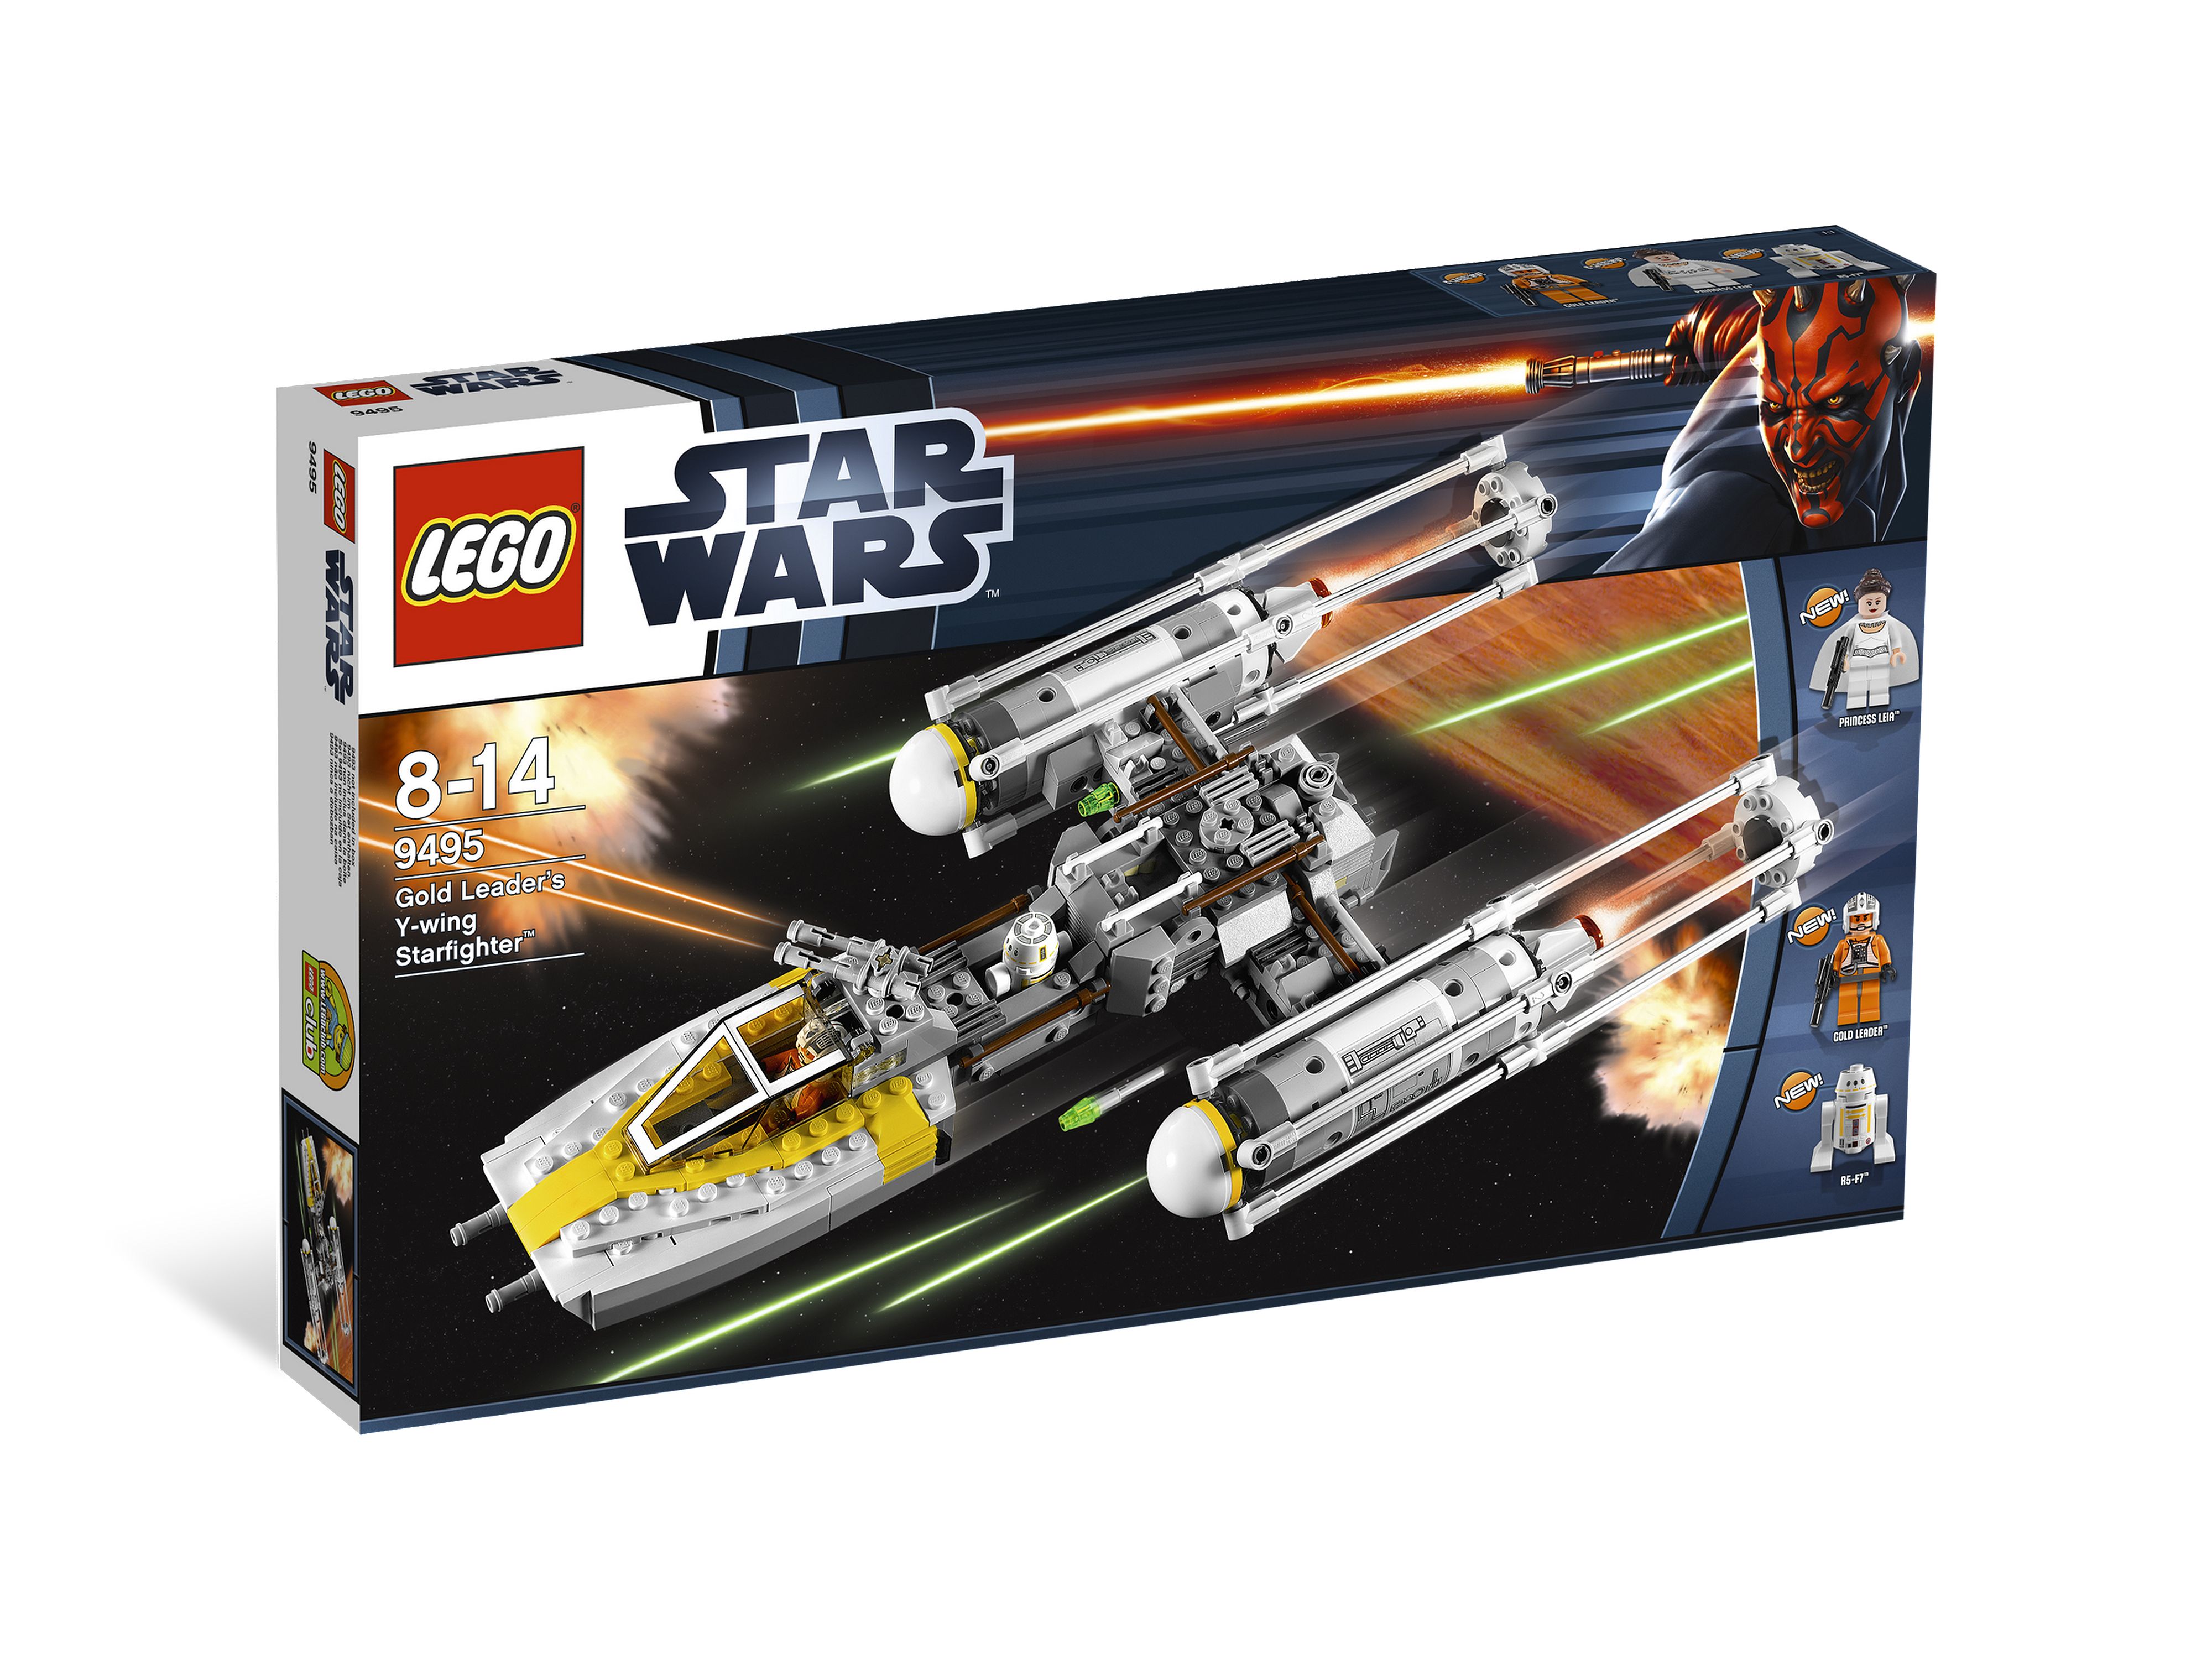 lego star wars 9494 instructions